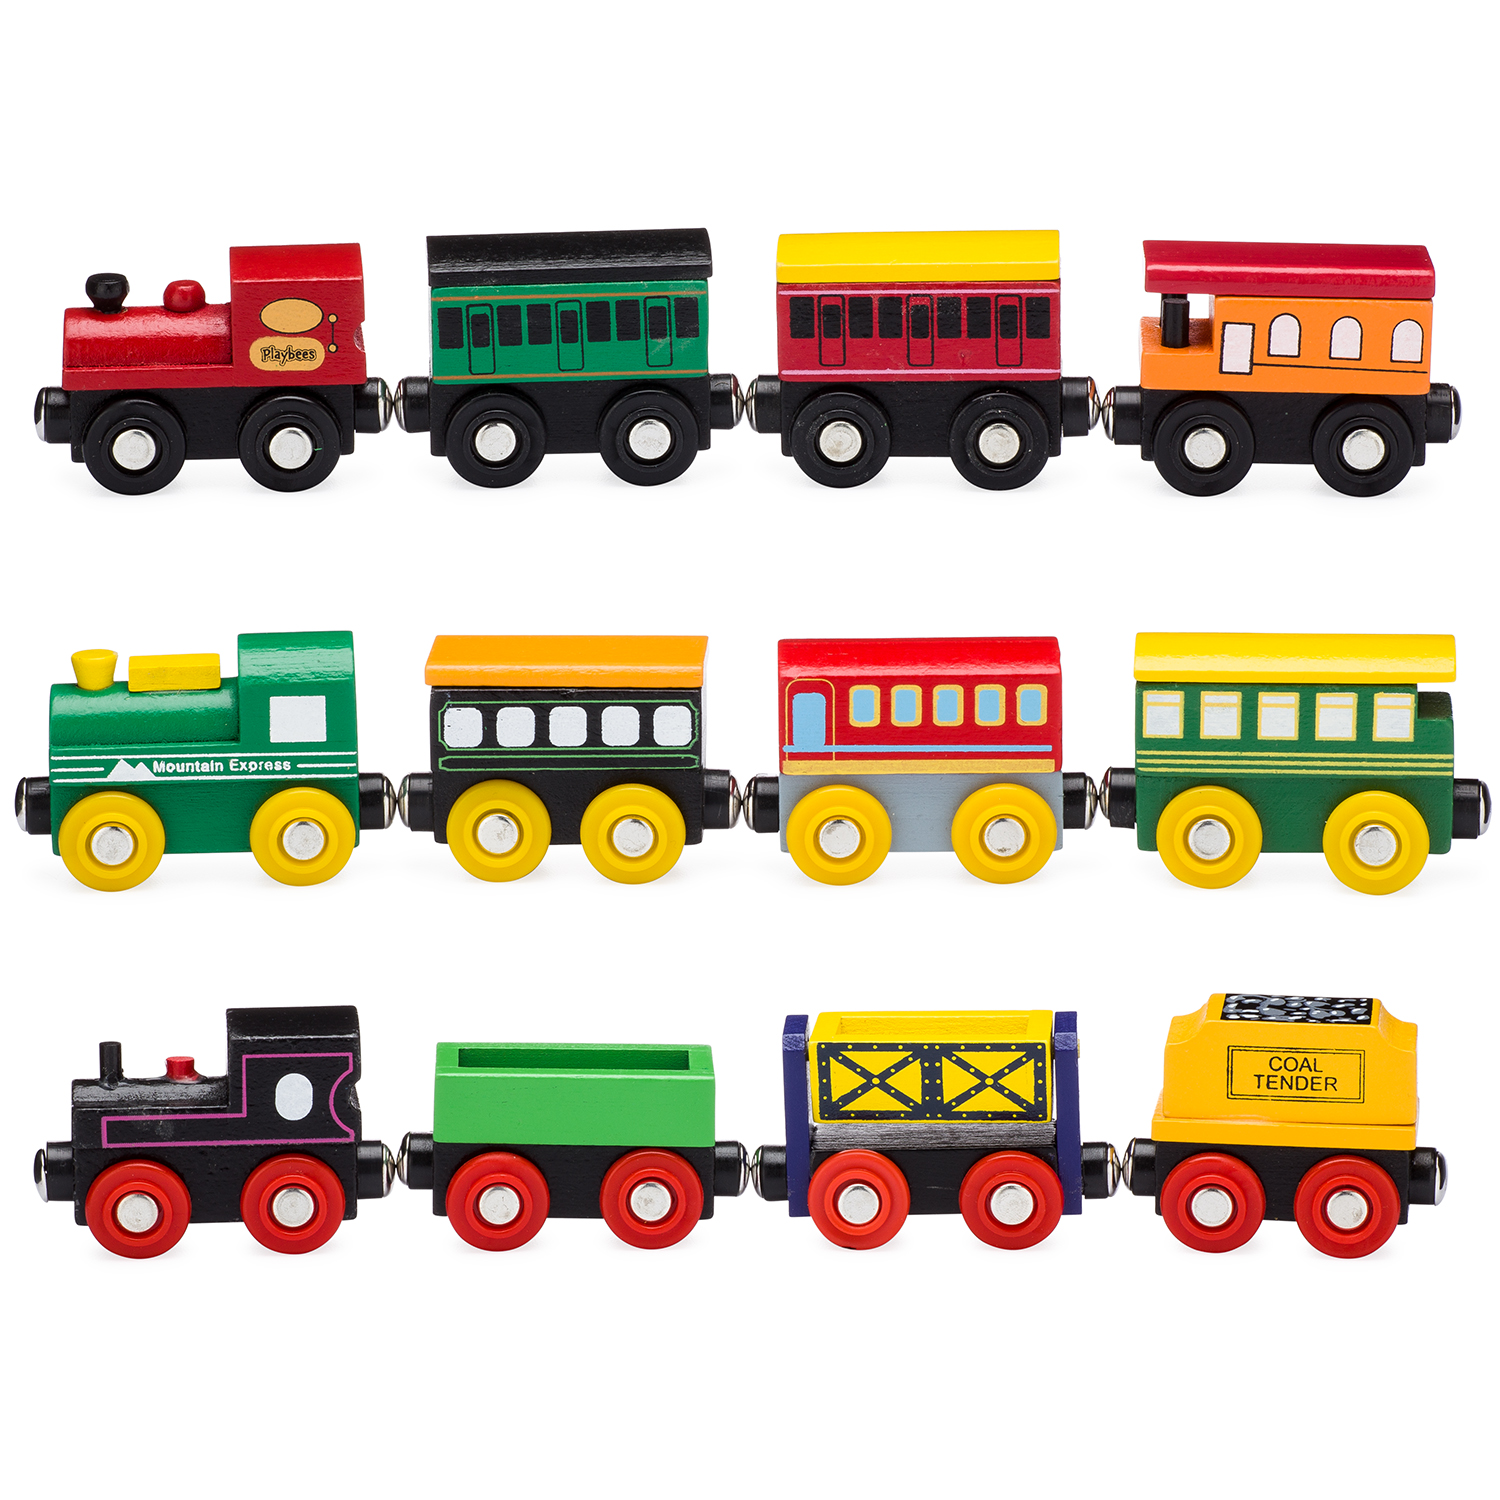 Playbees 12 Piece Wooden Toy Train Cars & Engine Set Compatible w  Other Tracks by Playbees